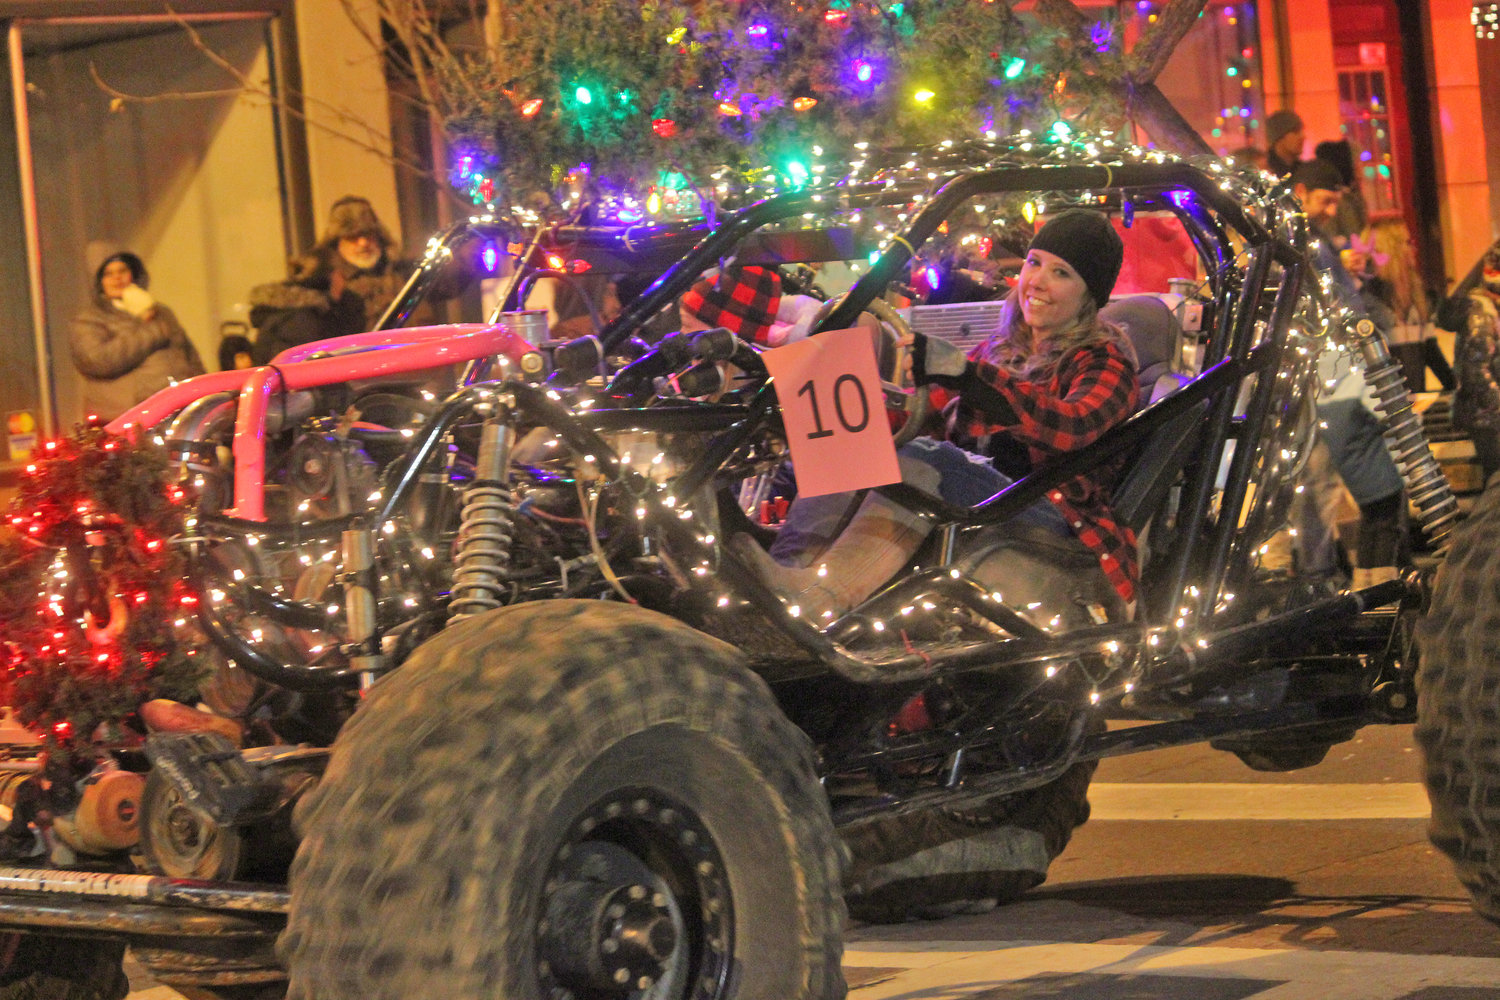 ALL REVVED UP FOR HOLIDAYS — Towns, villages and organizations from all over join in to welcome the season of giving for the second annual Canastota Parade of Lights on Saturday, Nov. 30.